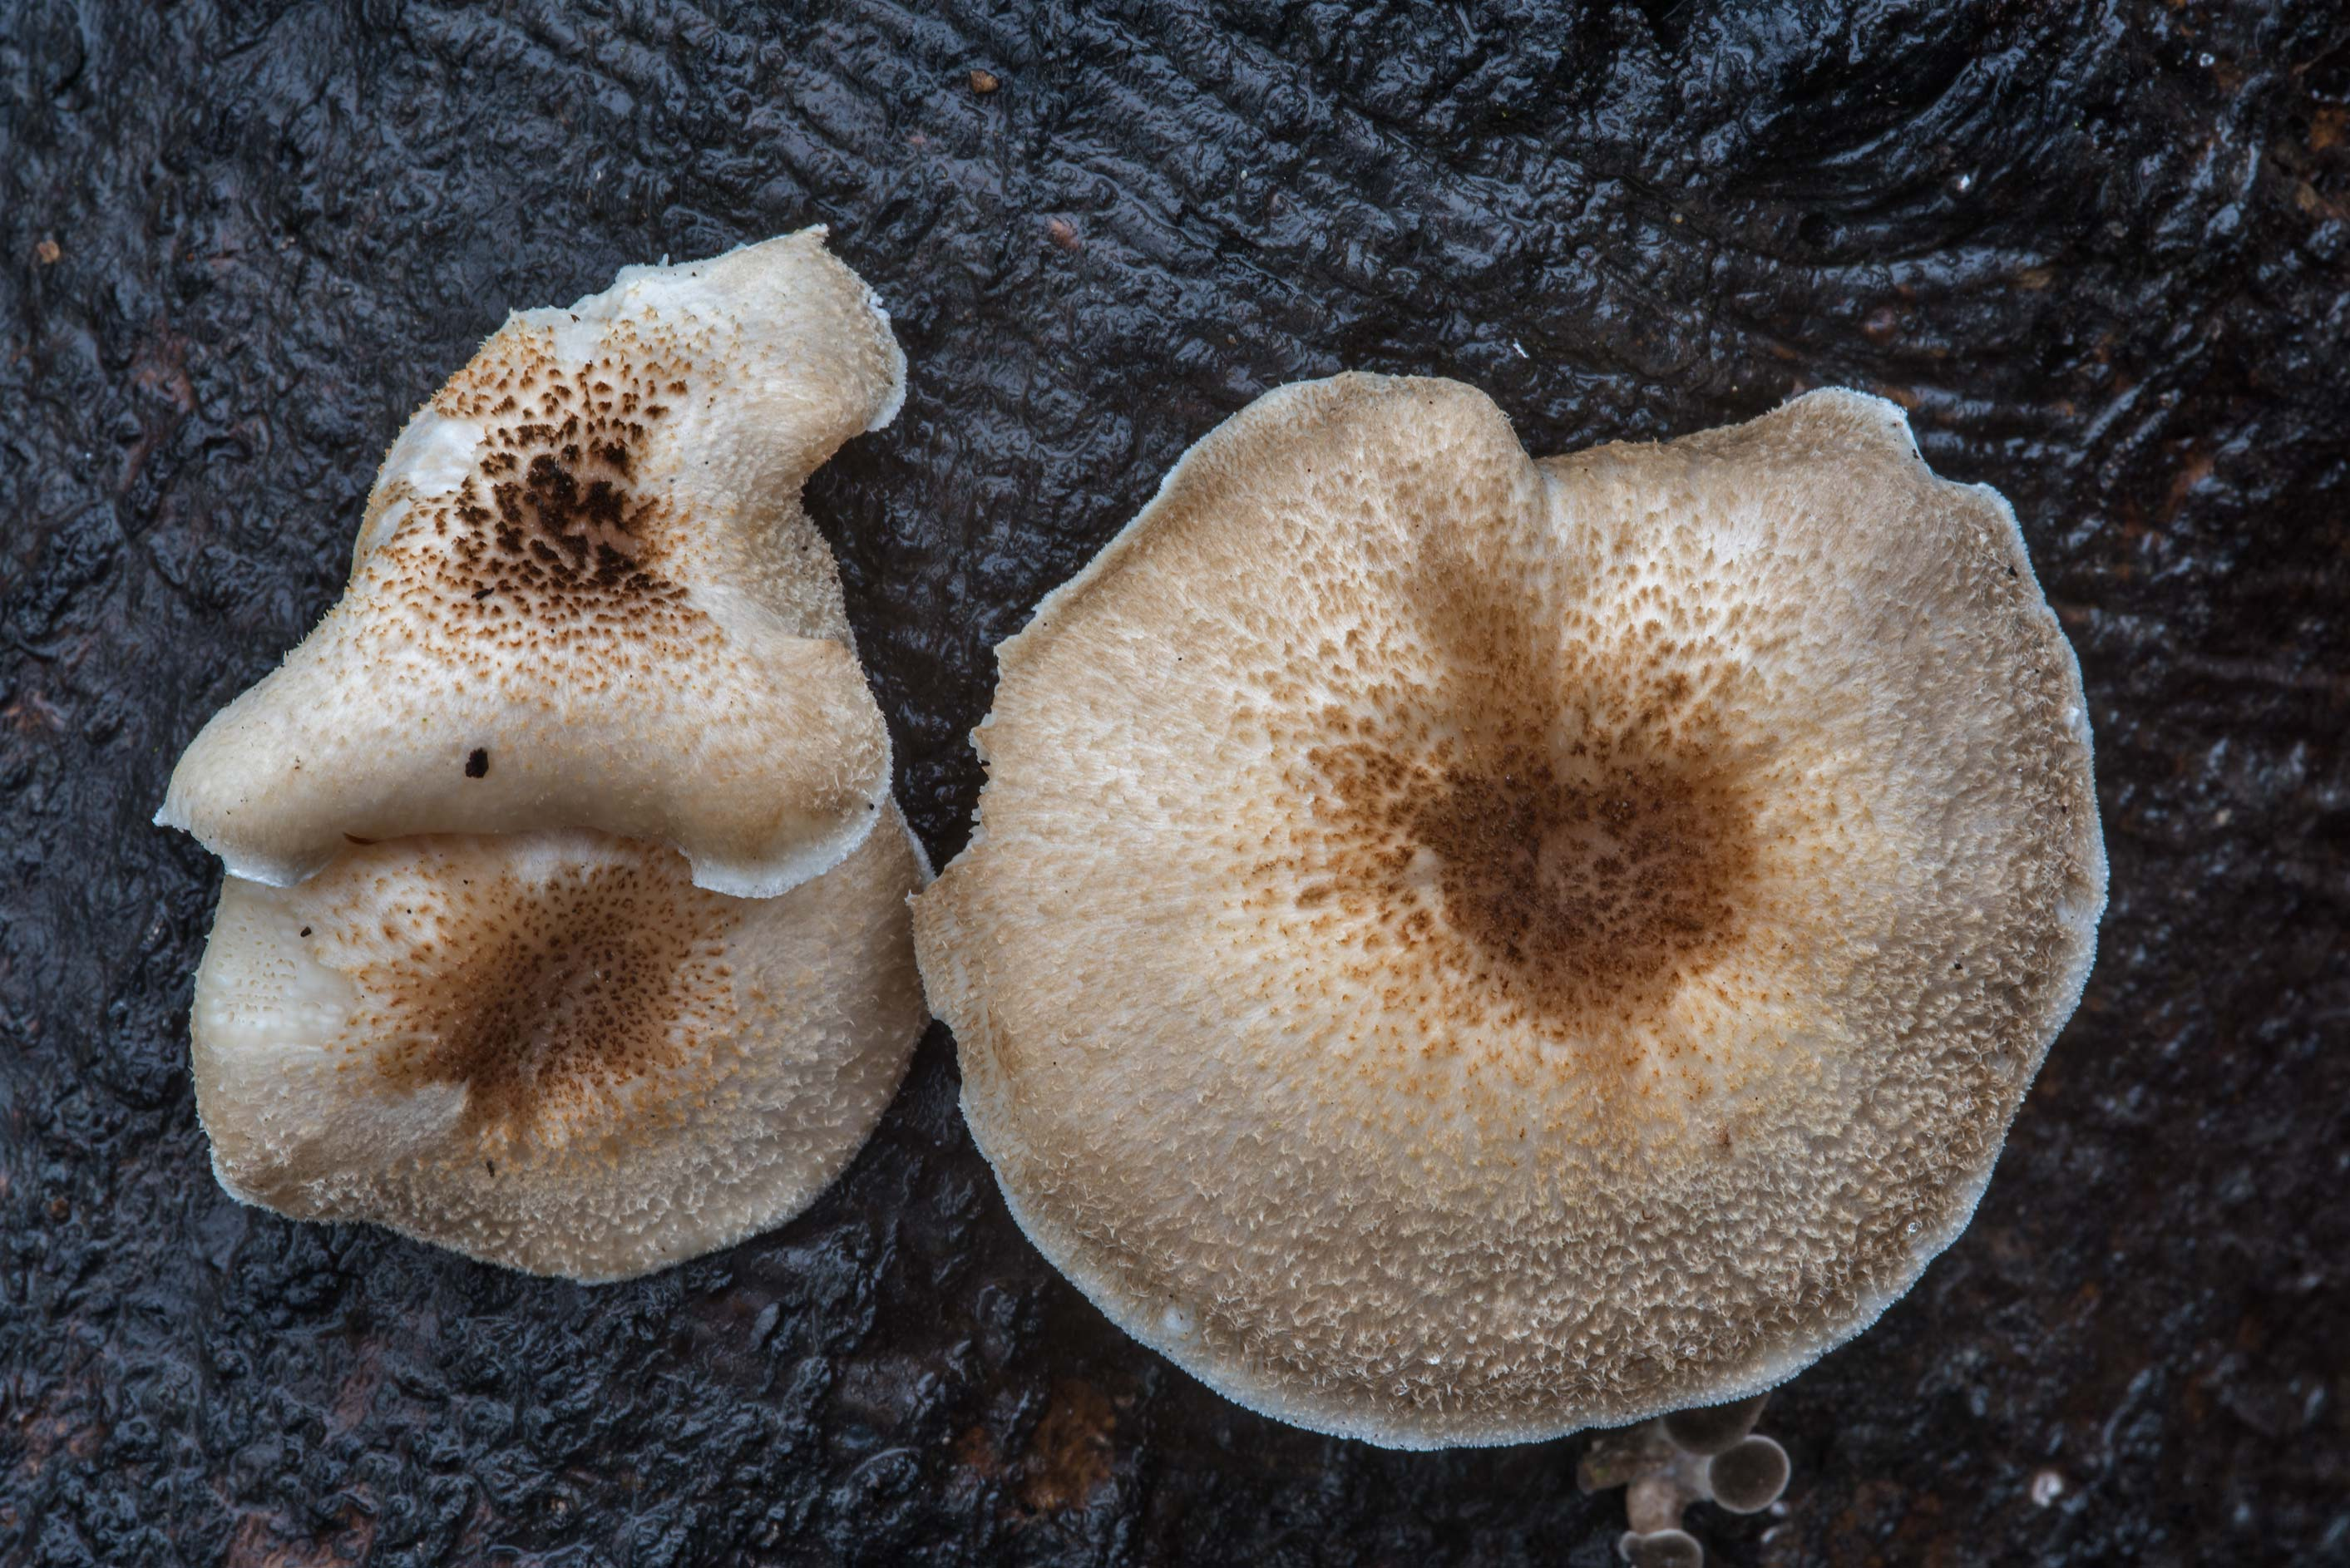 Tiger sawgill mushrooms (Lentinus tigrinus) in Bee Creek Park. College Station, Texas